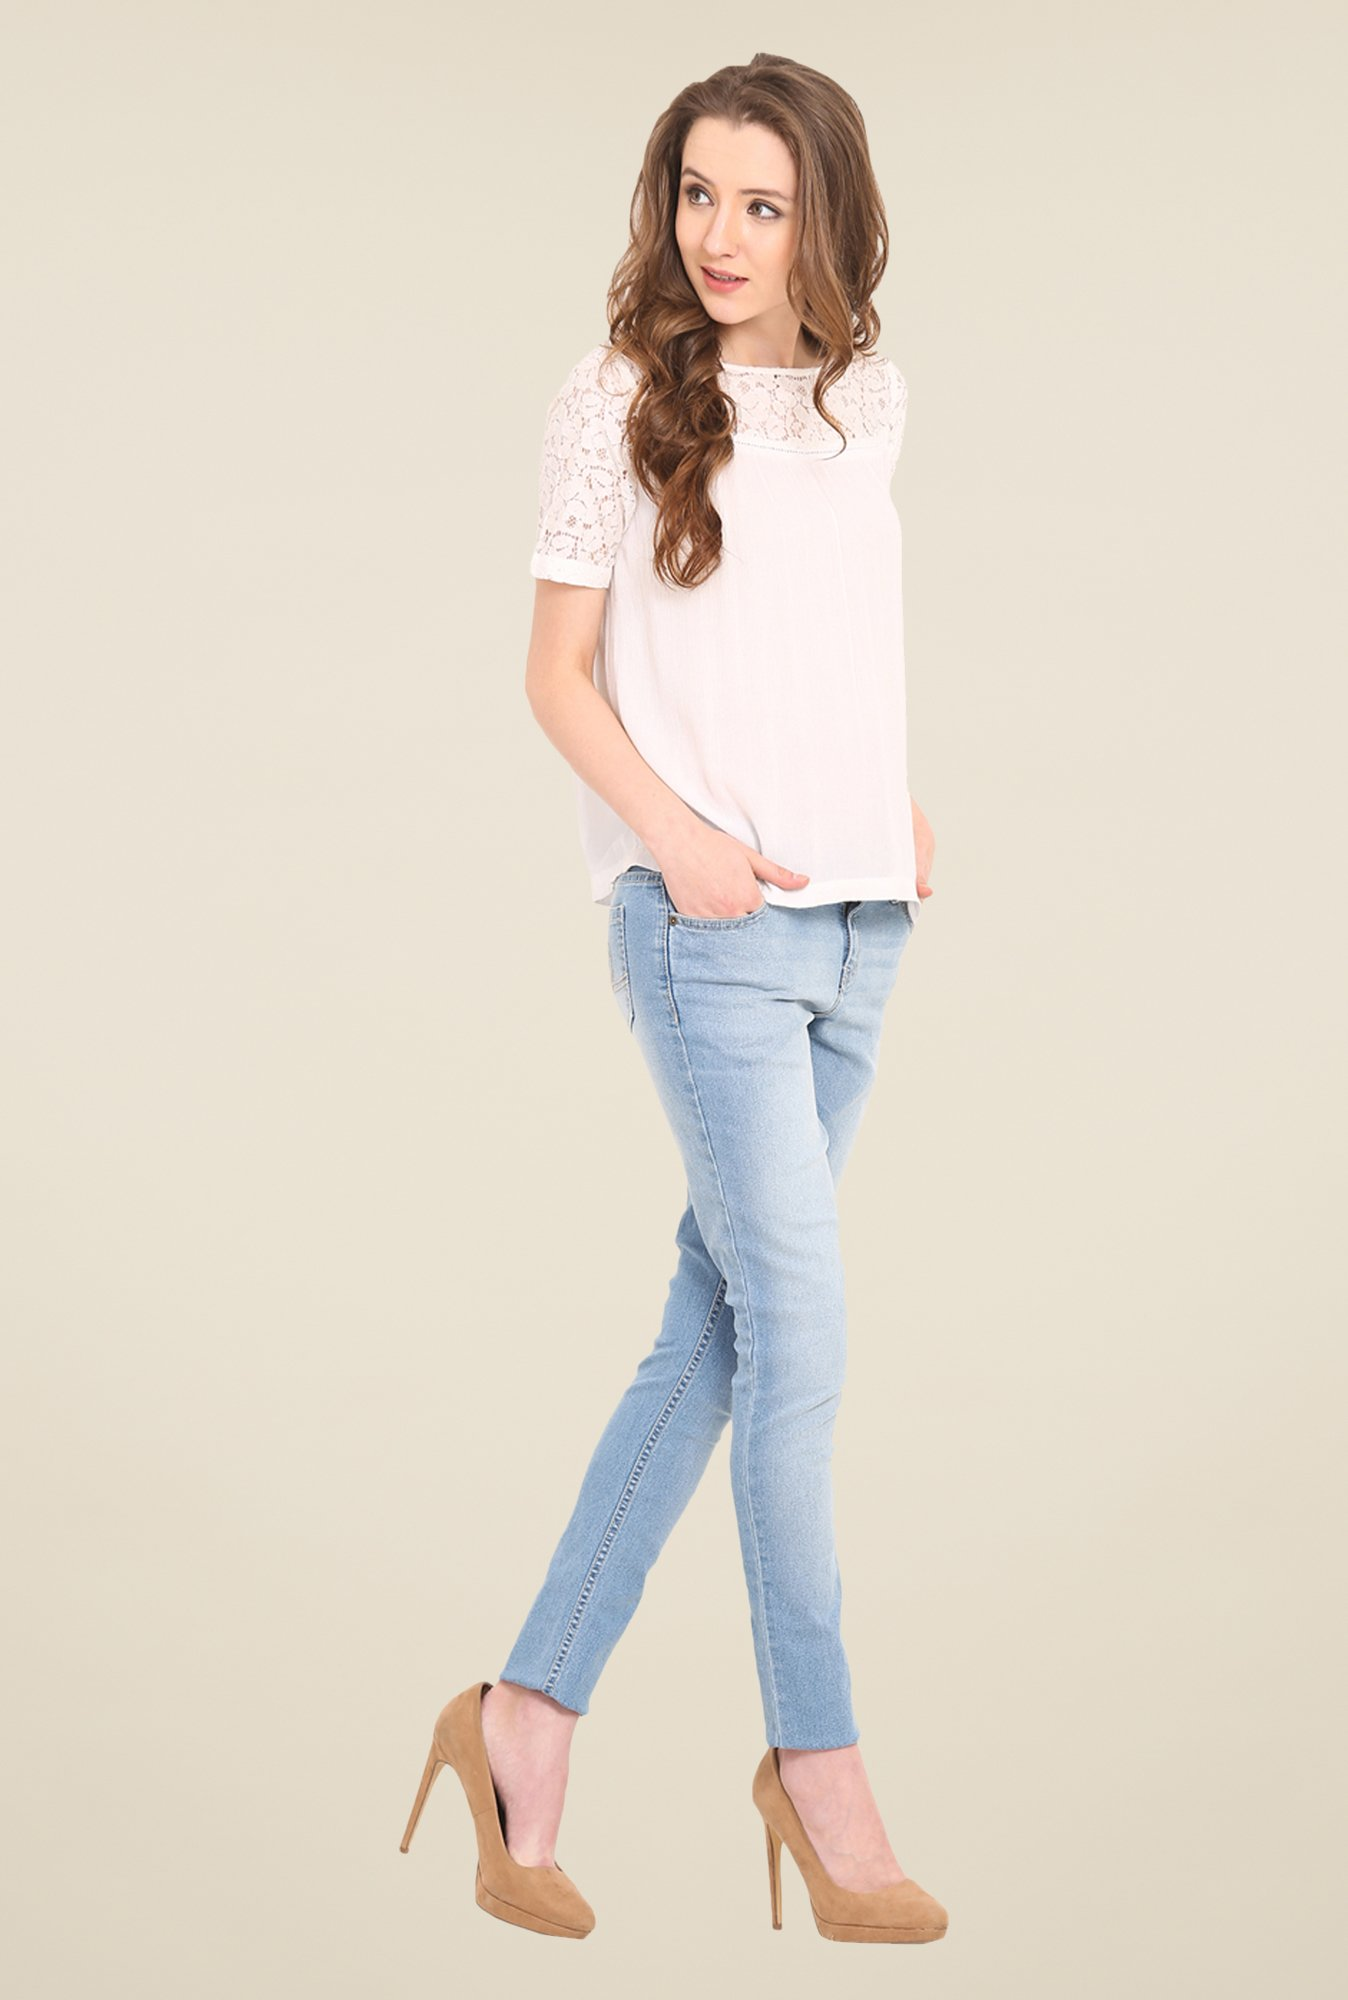 Saiesta White Solid Top